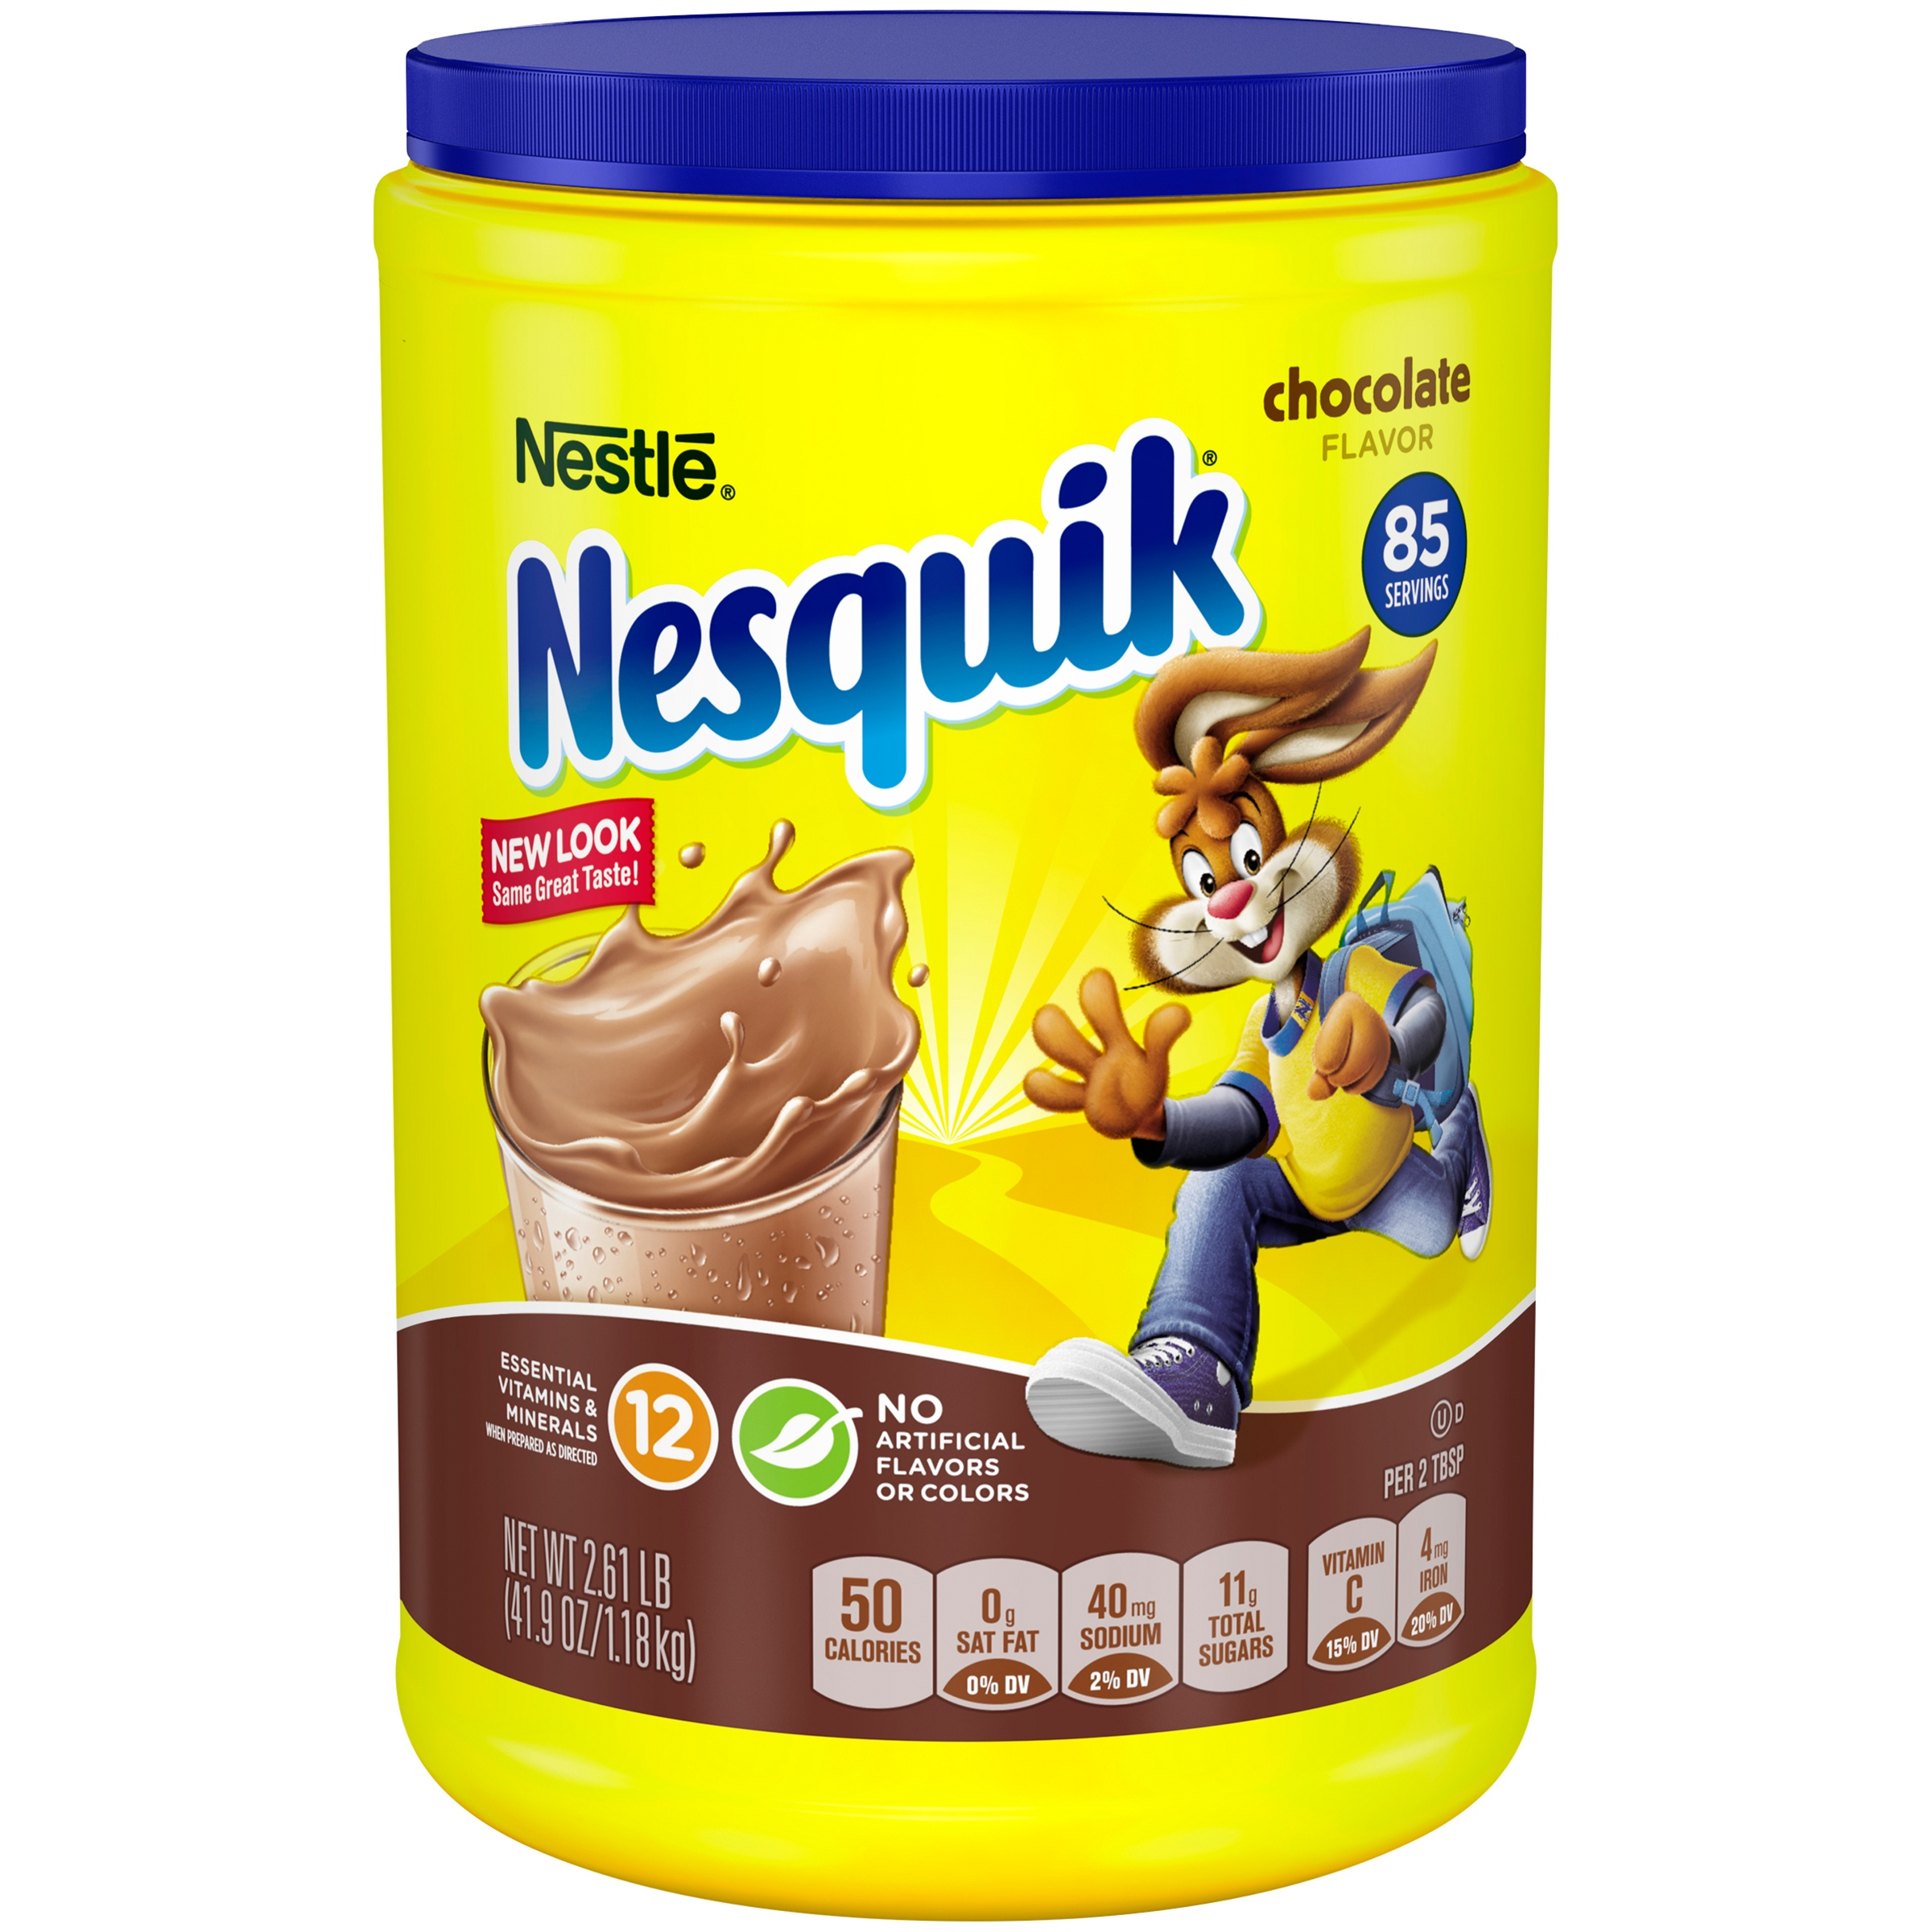 NESQUIK Chocolate Powder 2.61 lb. Canister